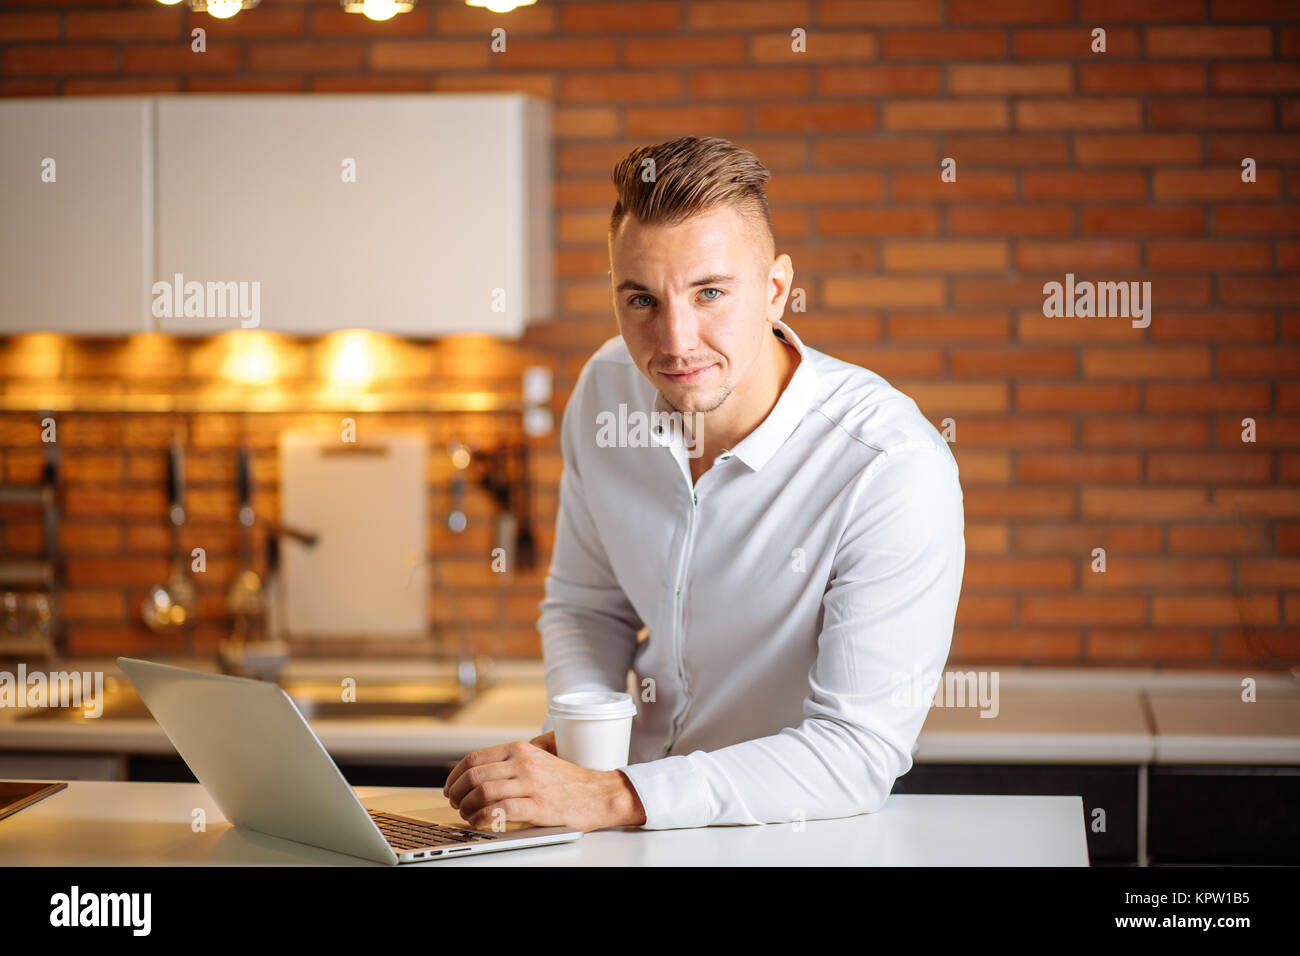 entrepreneur sitting in his office holding cup of coffee smiling to camera - Stock Image